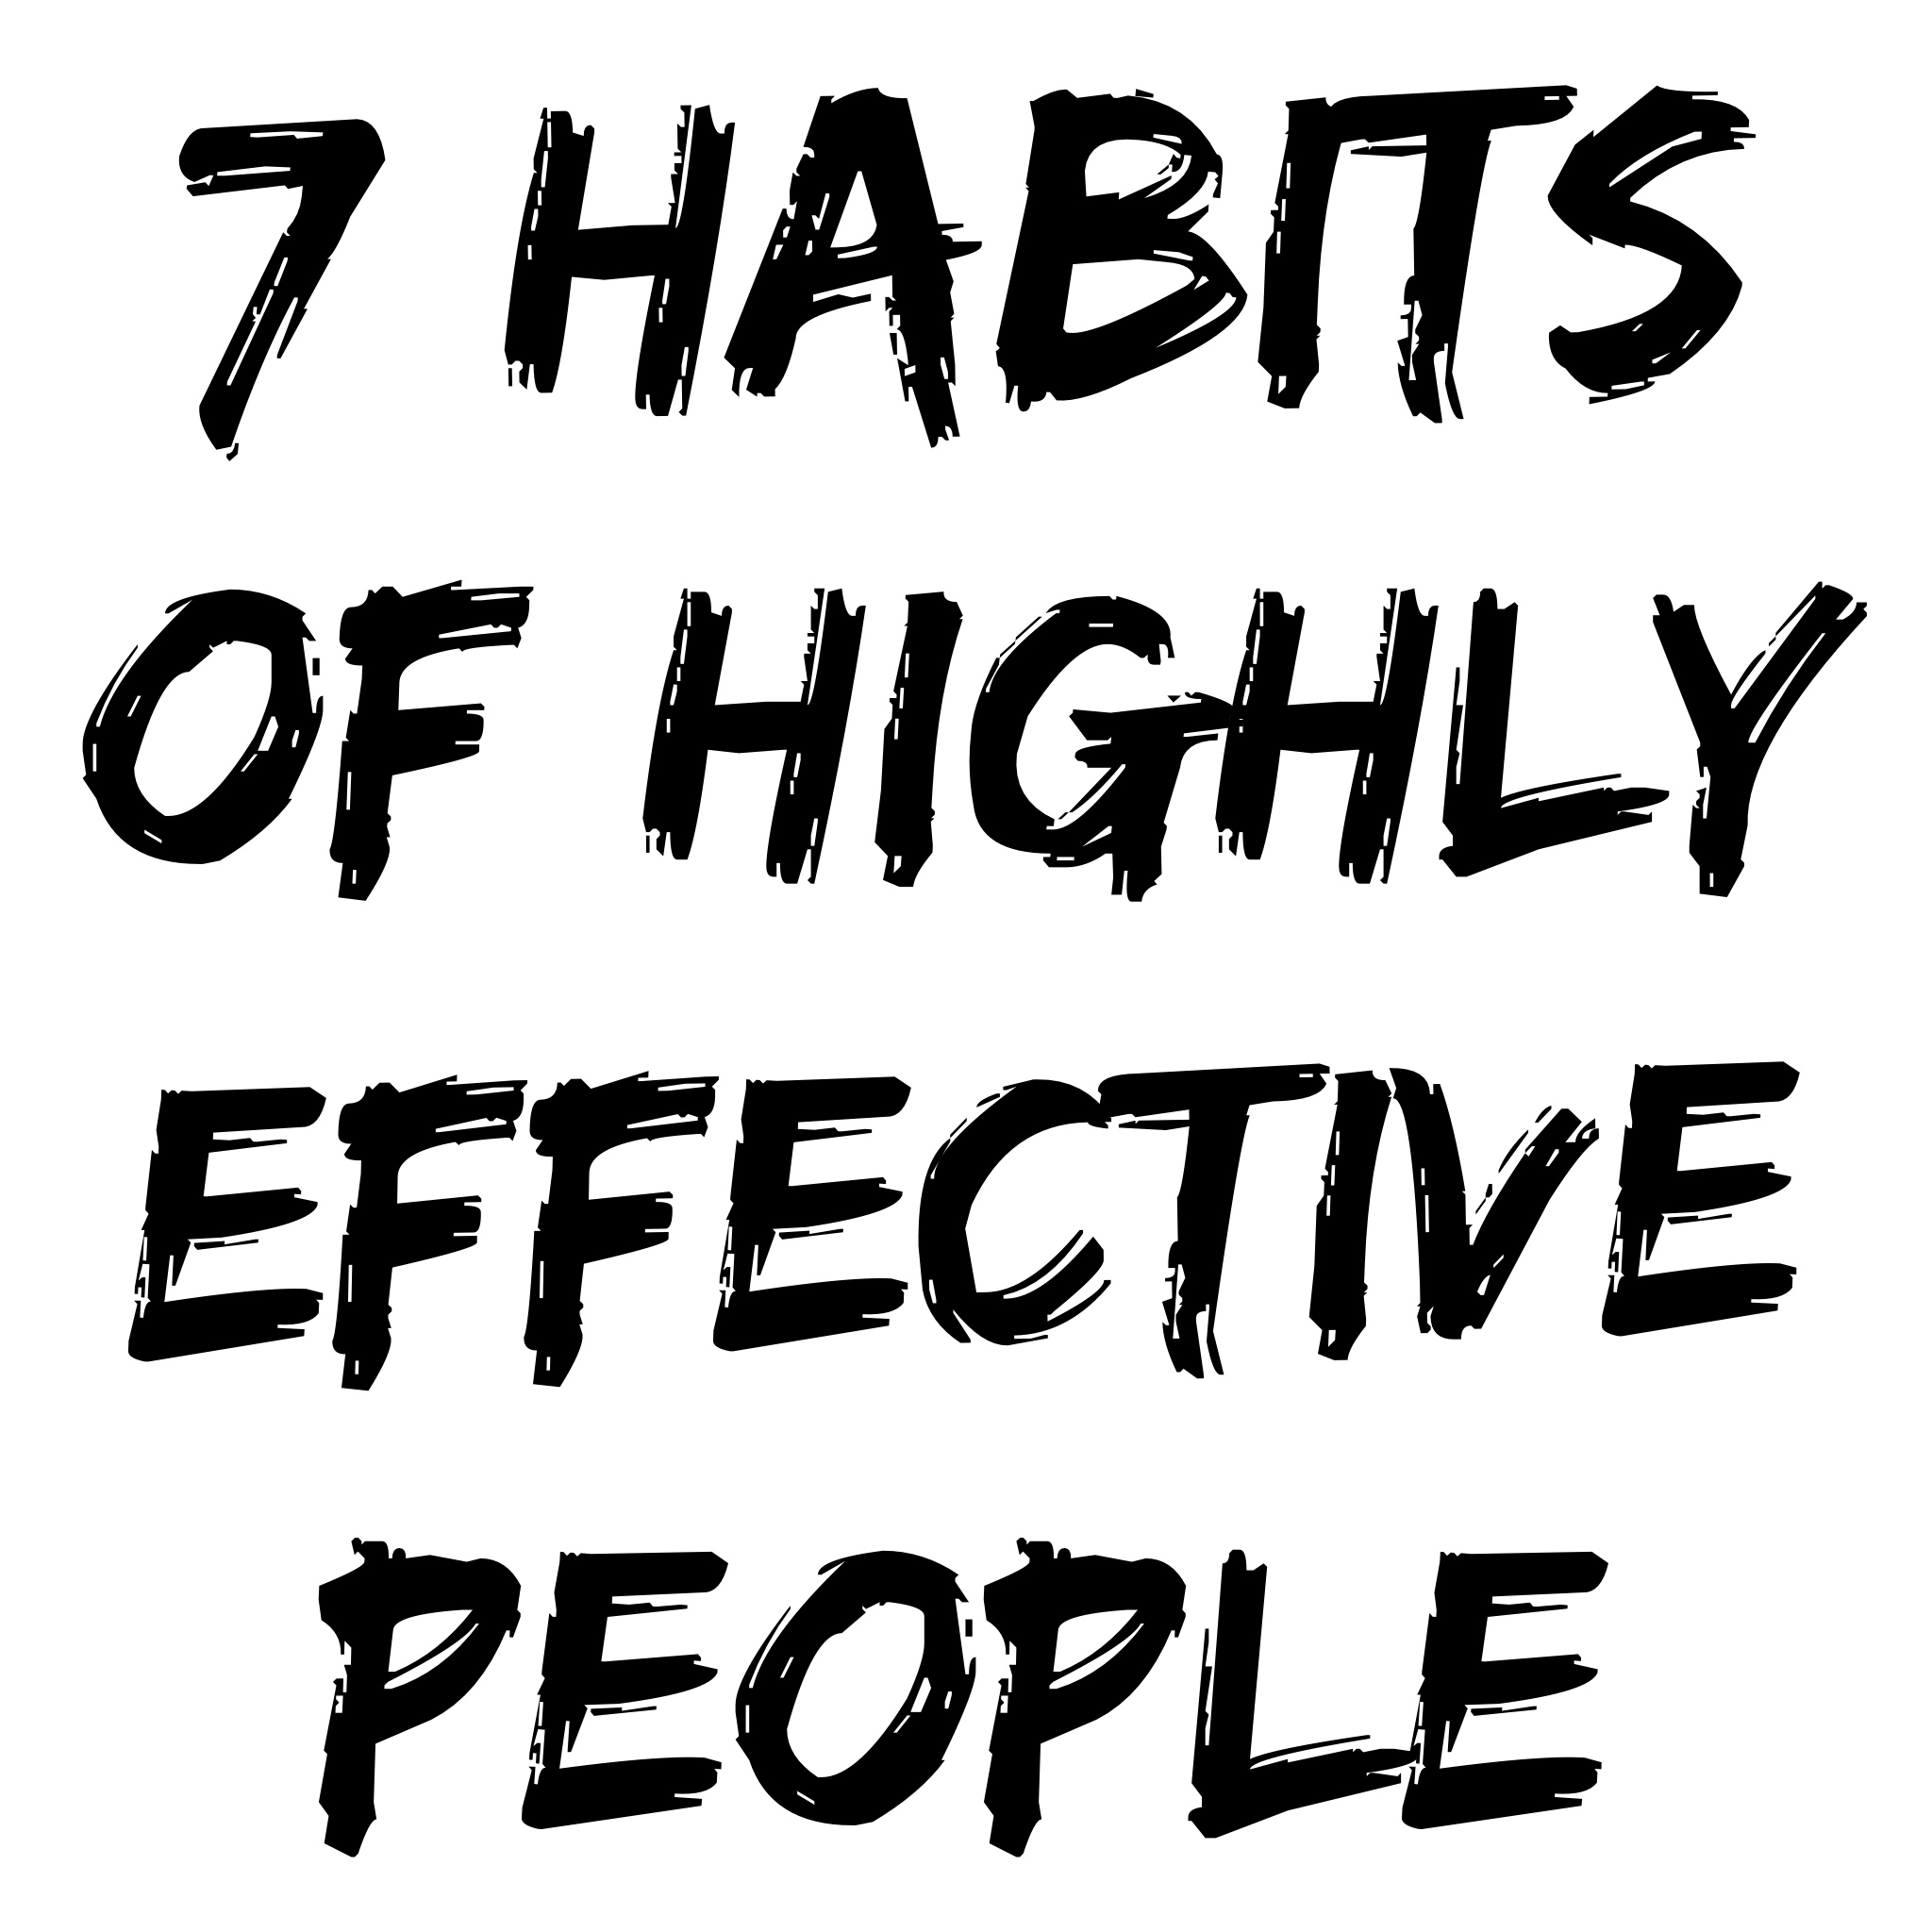 7 Habits Of Highly Effective People Vs Ineffective People